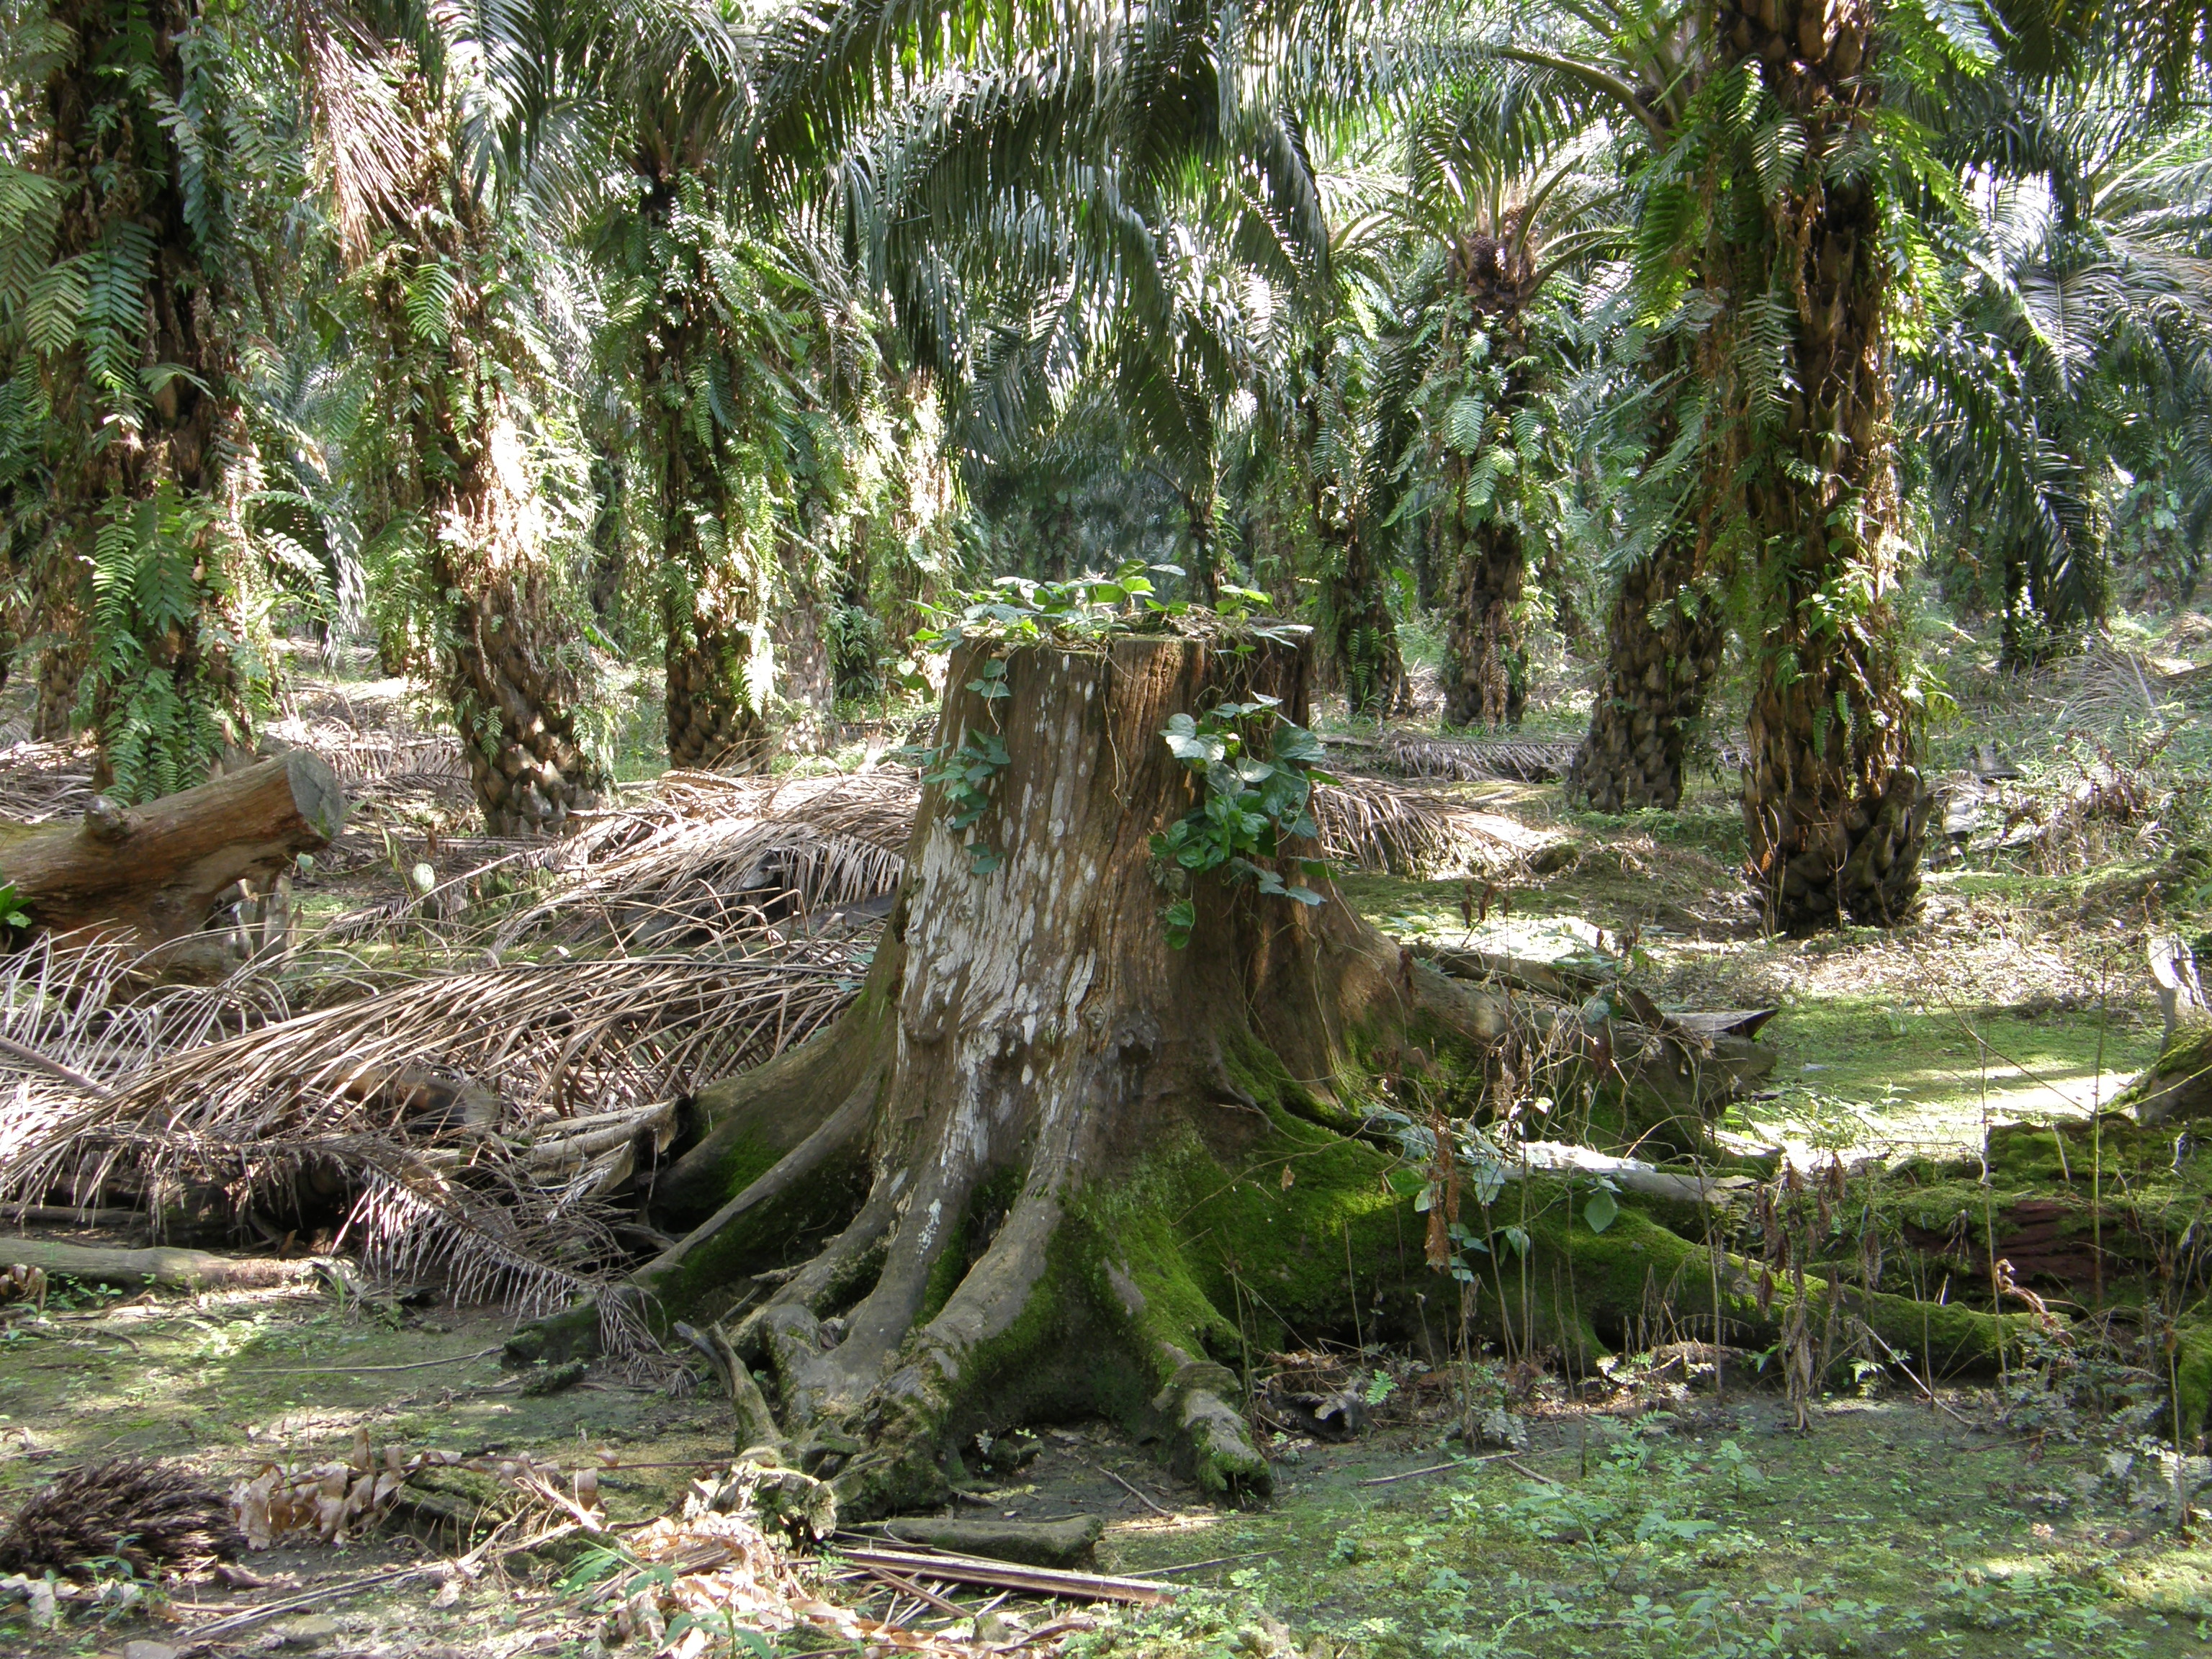 Oil palm: collateral damage, tree